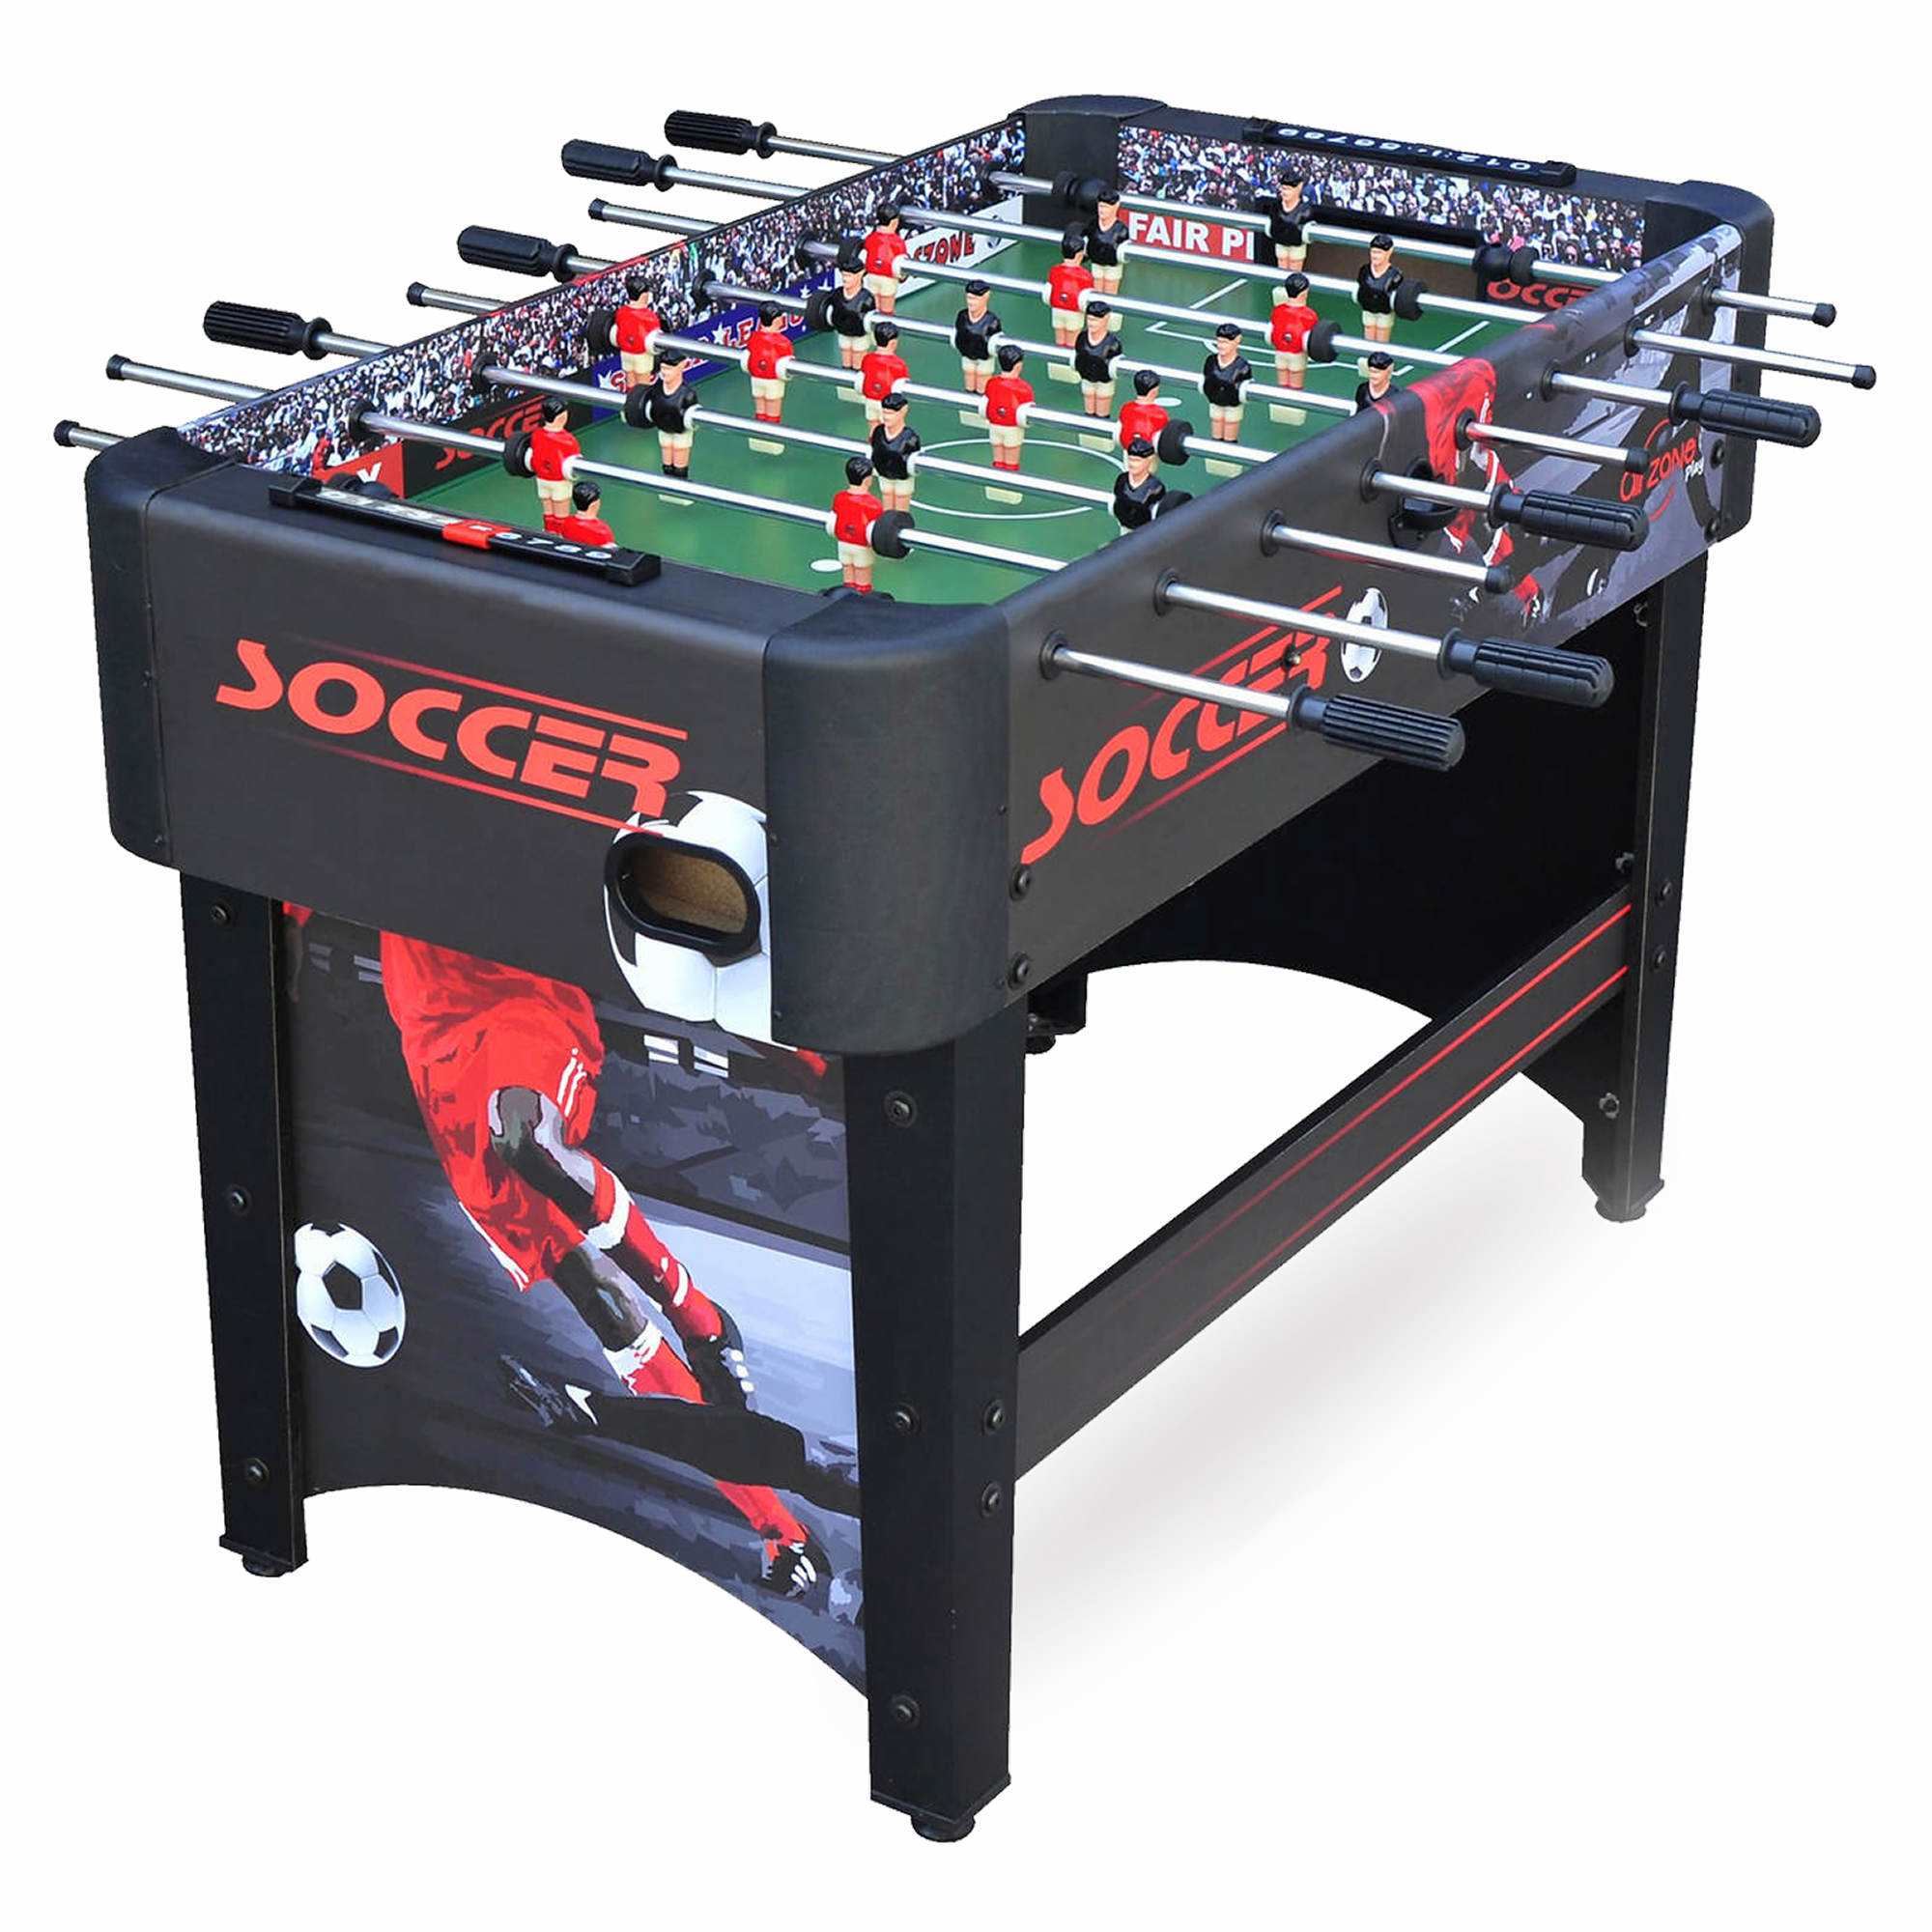 Airzone play 47 foosball table